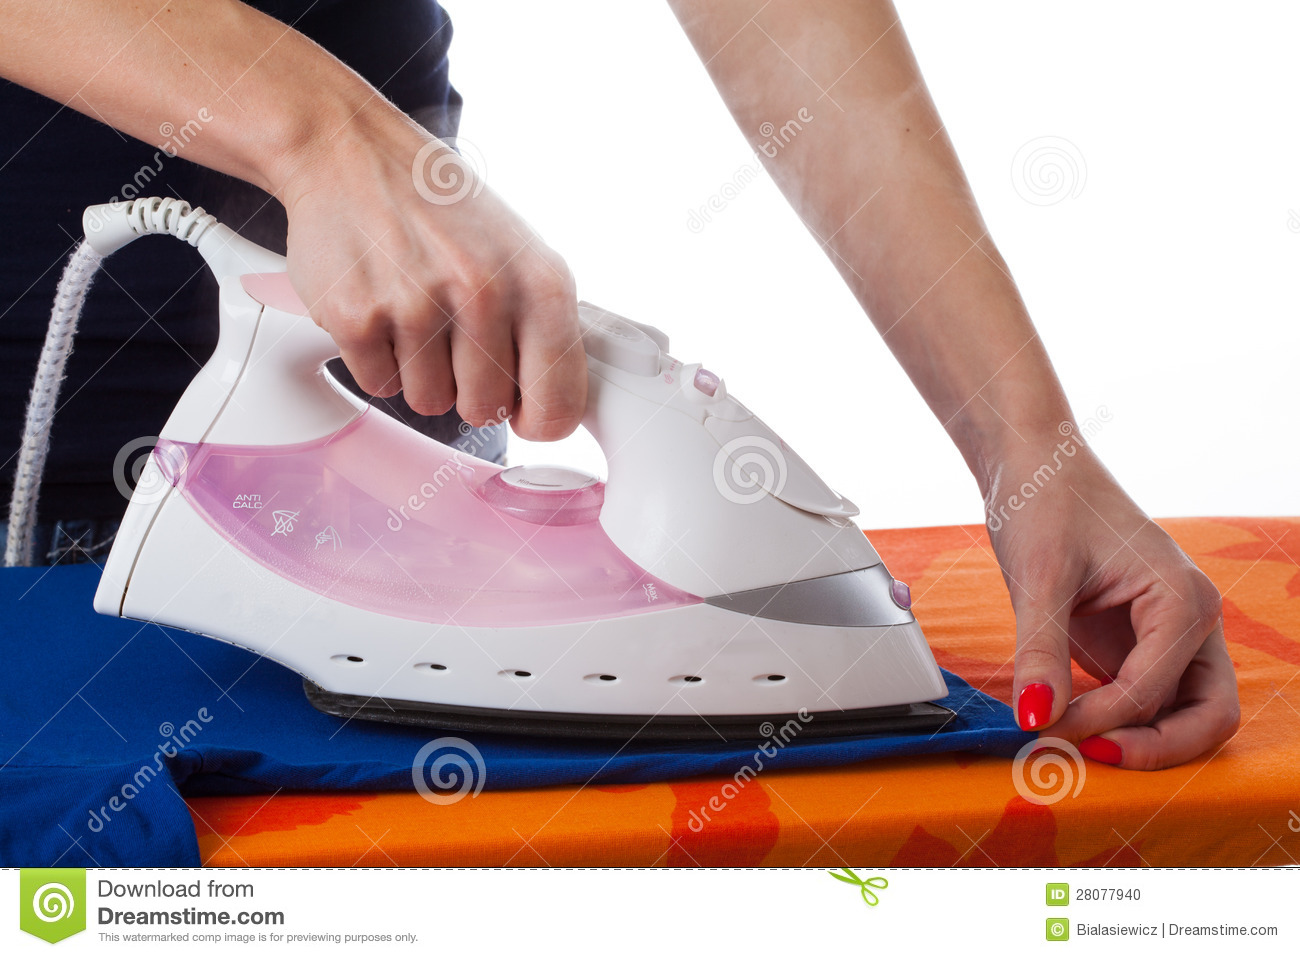 Woman Ironing Clothes Stock Photo - Image: 28077940